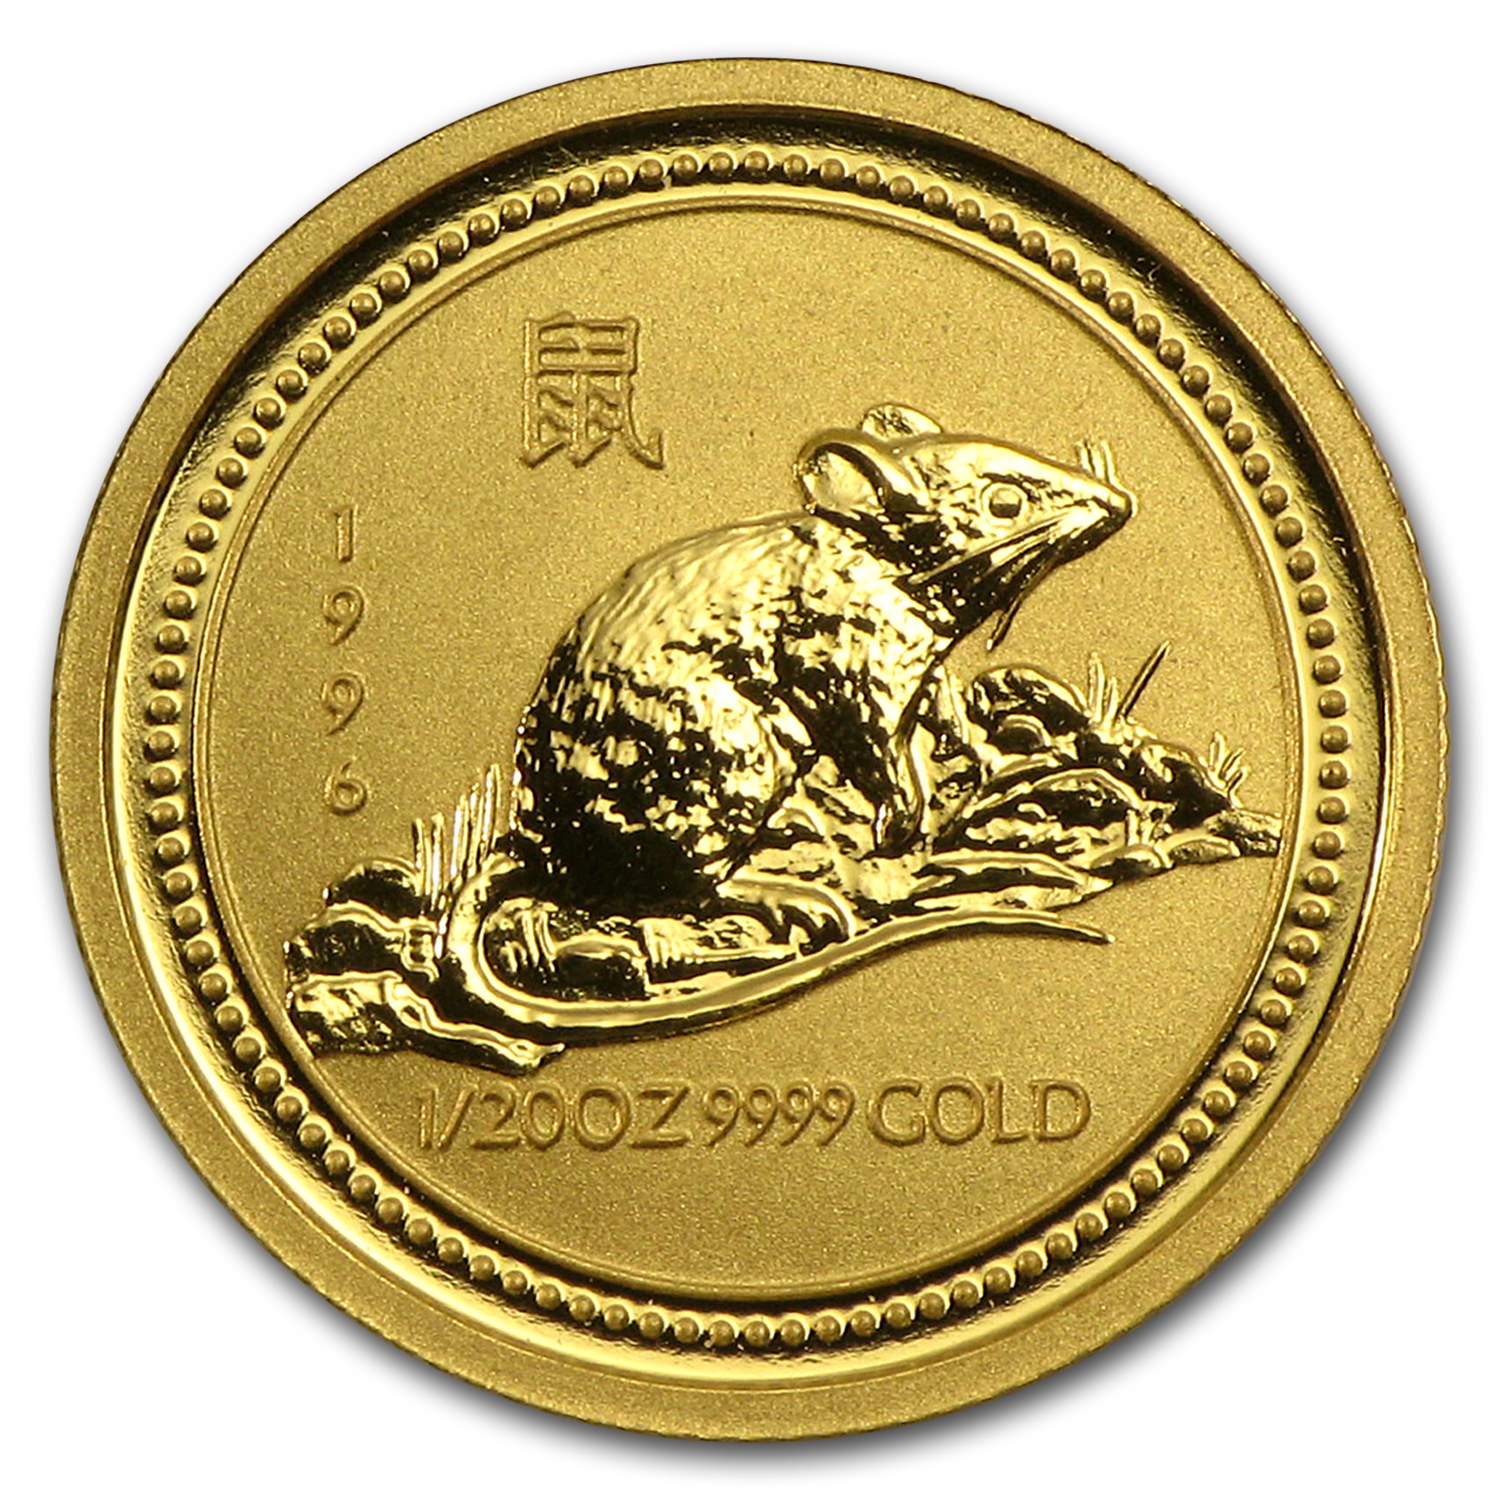 1996 Australia 1/20 oz Gold Lunar Rat (Series I)